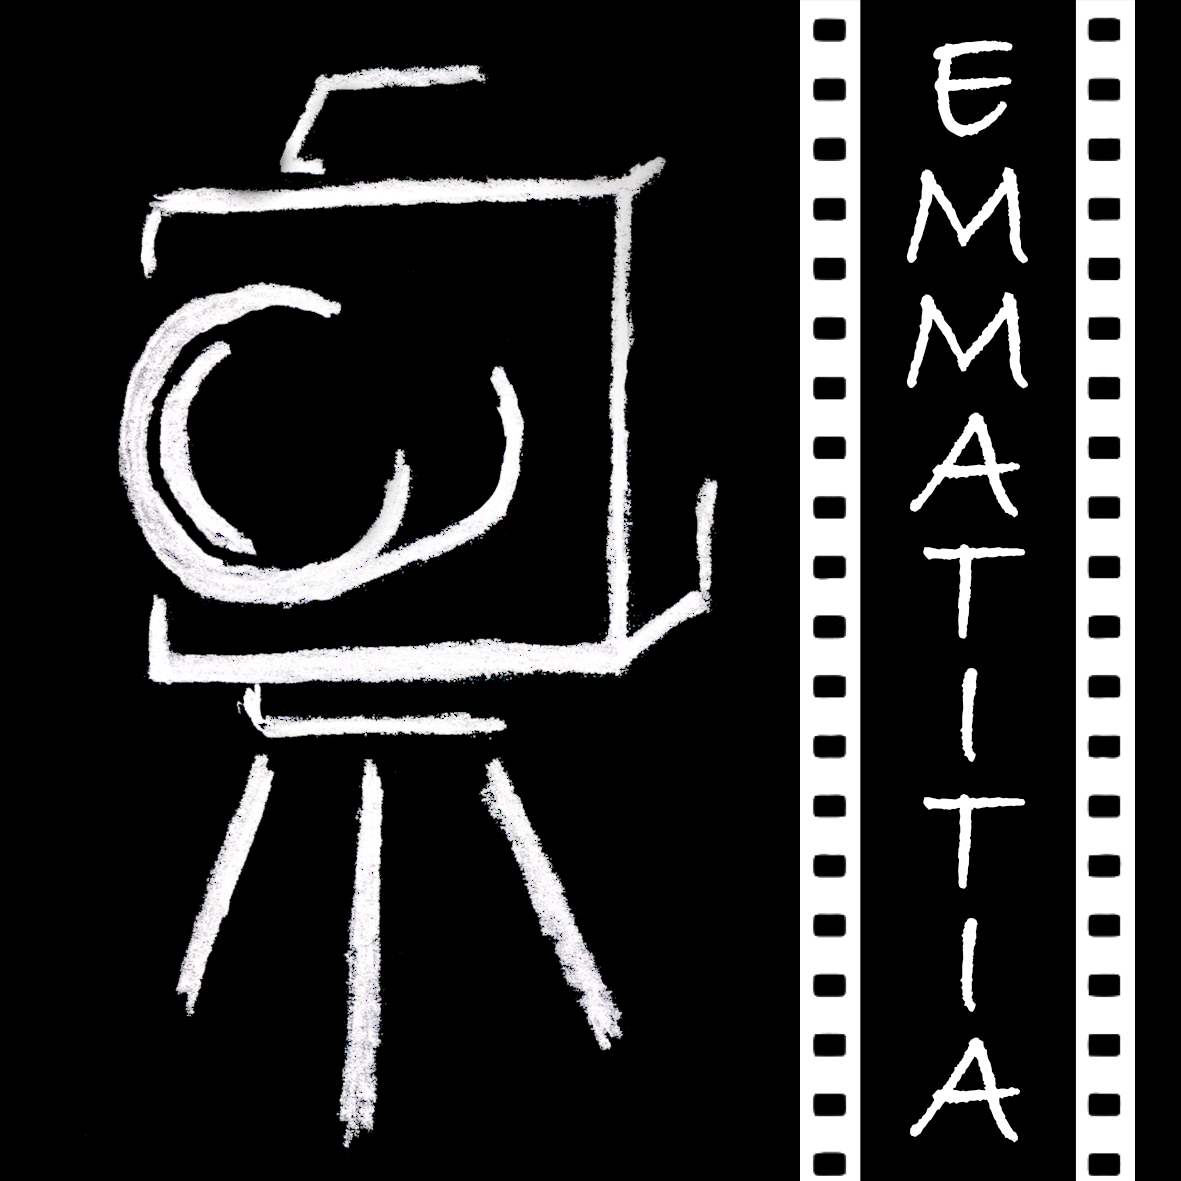 Atelier Photo Emmatitia photographe d'art et de portrait